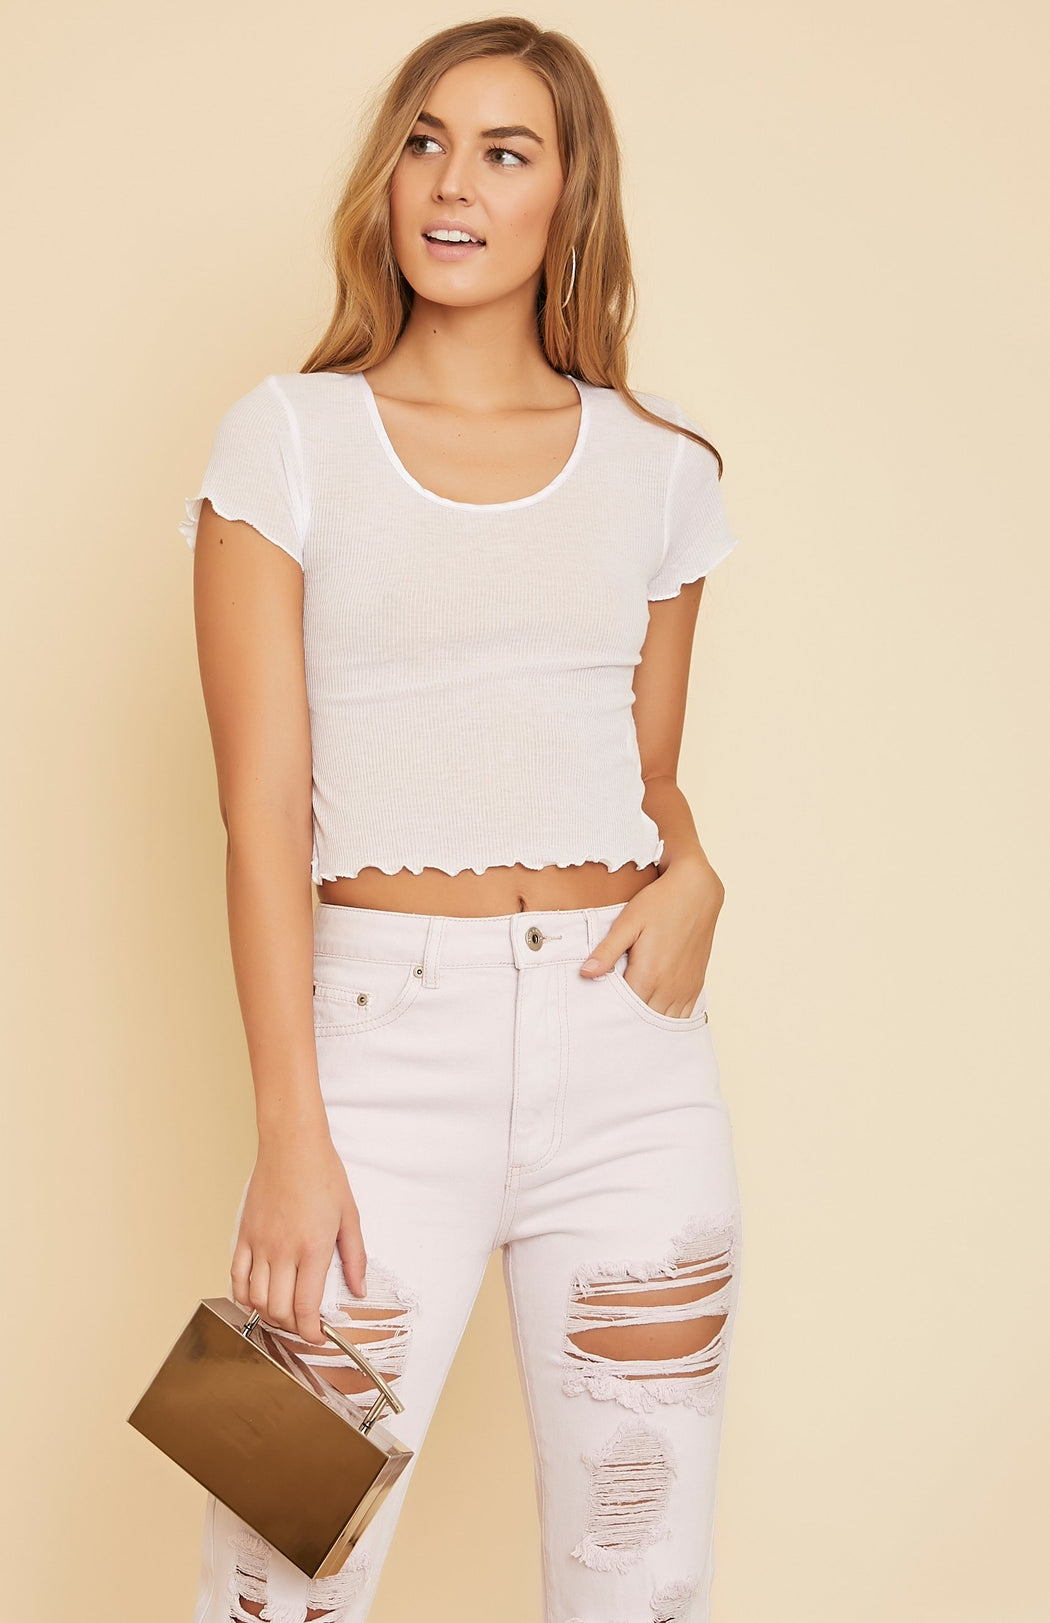 Michaela Crop Top - wearNYLA